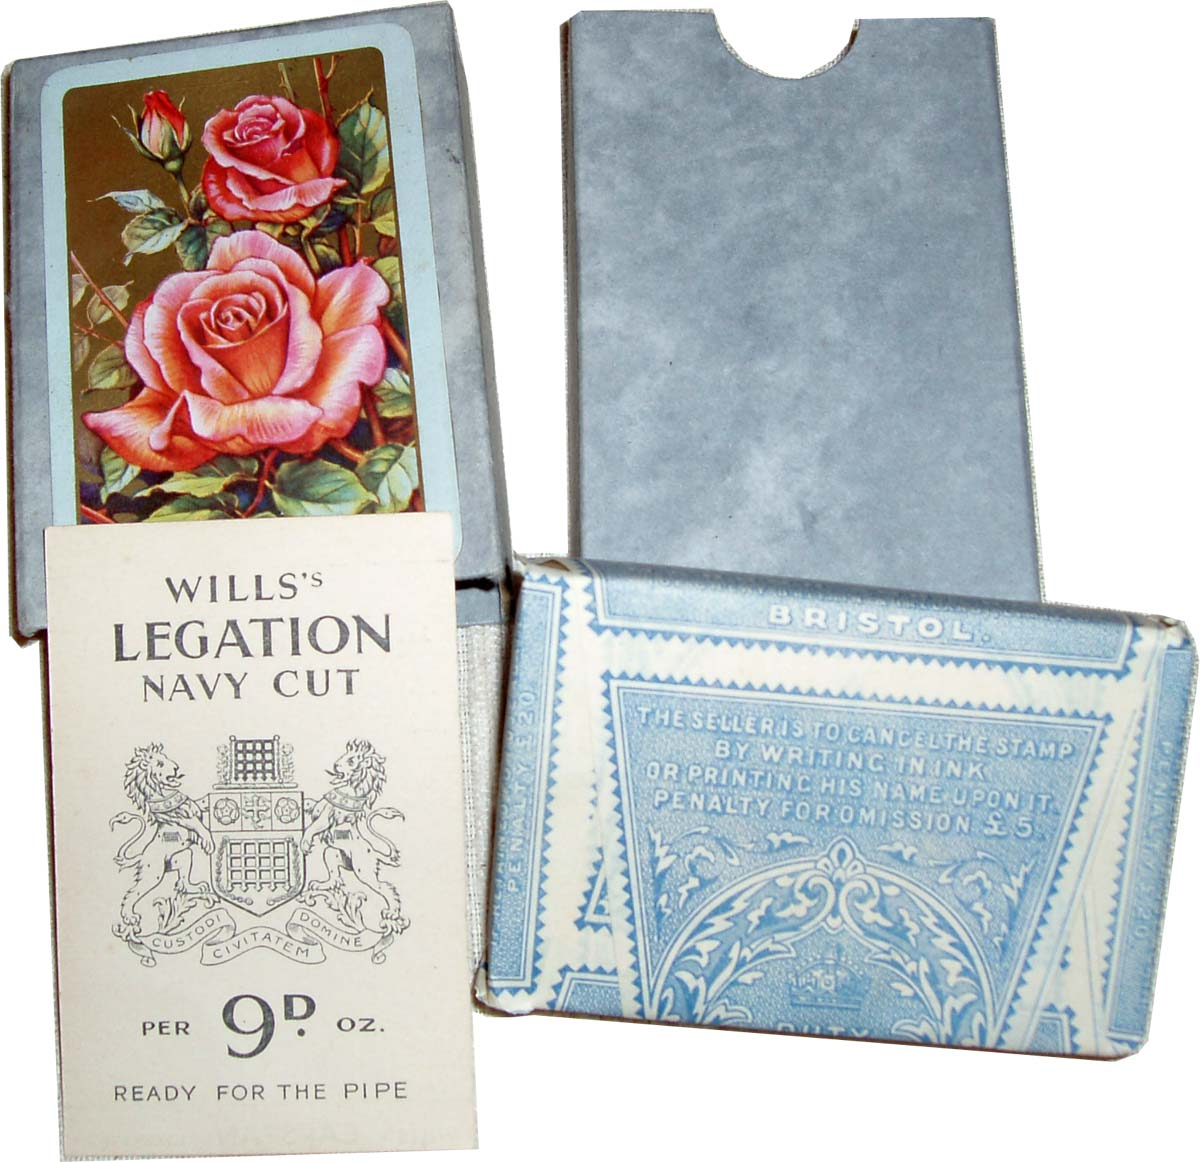 De Luxe playing cards printed by Mardon, Son & Hall for the Wills gift scheme in tax wrapper, 1930s